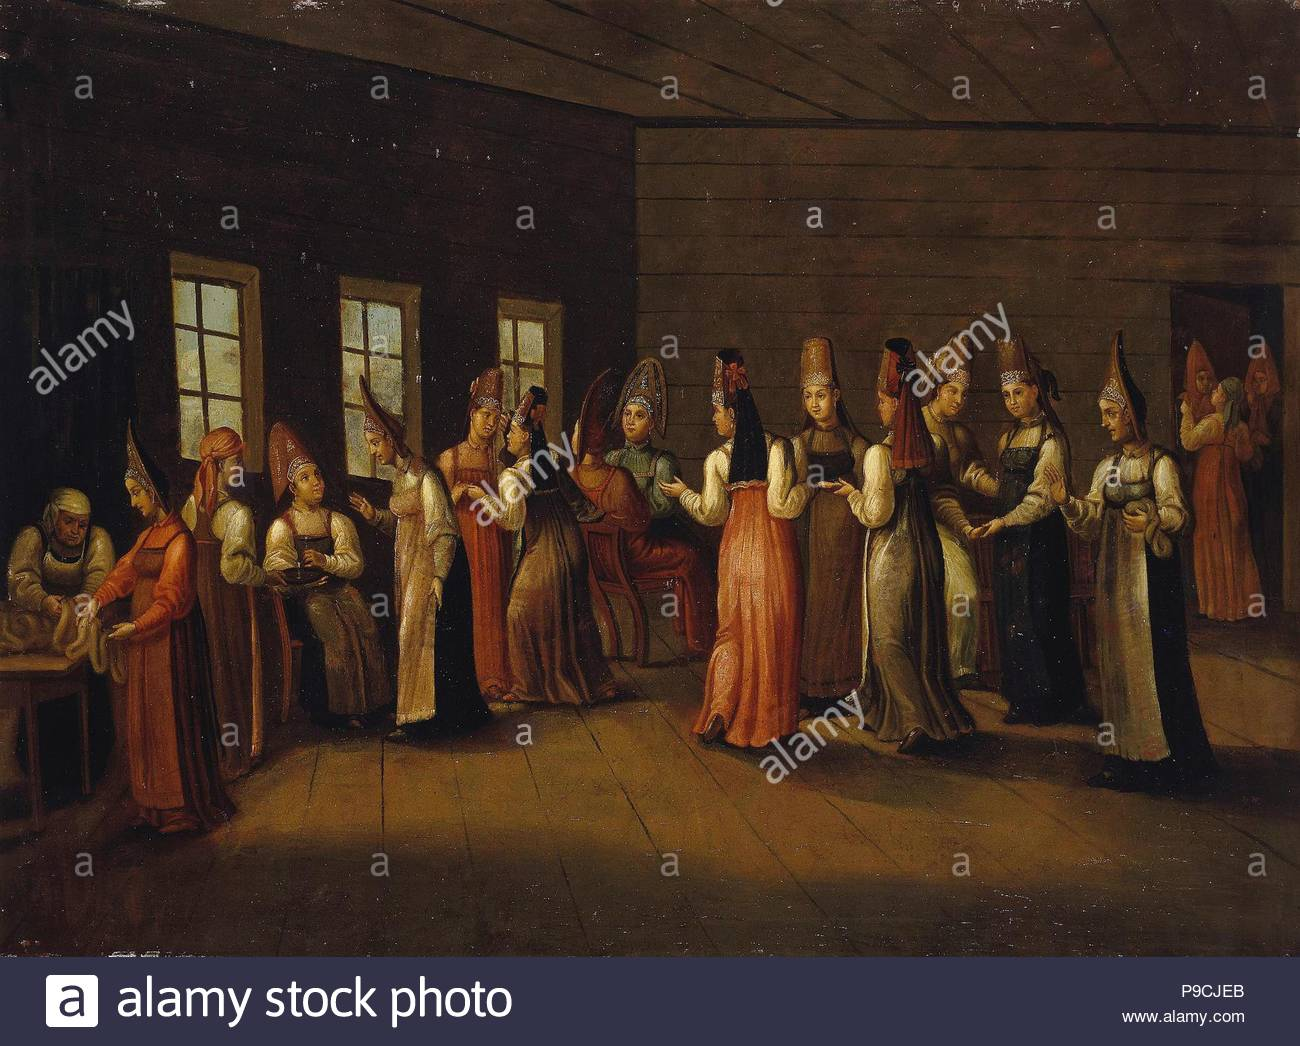 Eve-of-the-wedding party in a Merchant's House. Museum: State Hermitage, St. Petersburg. - Stock Image